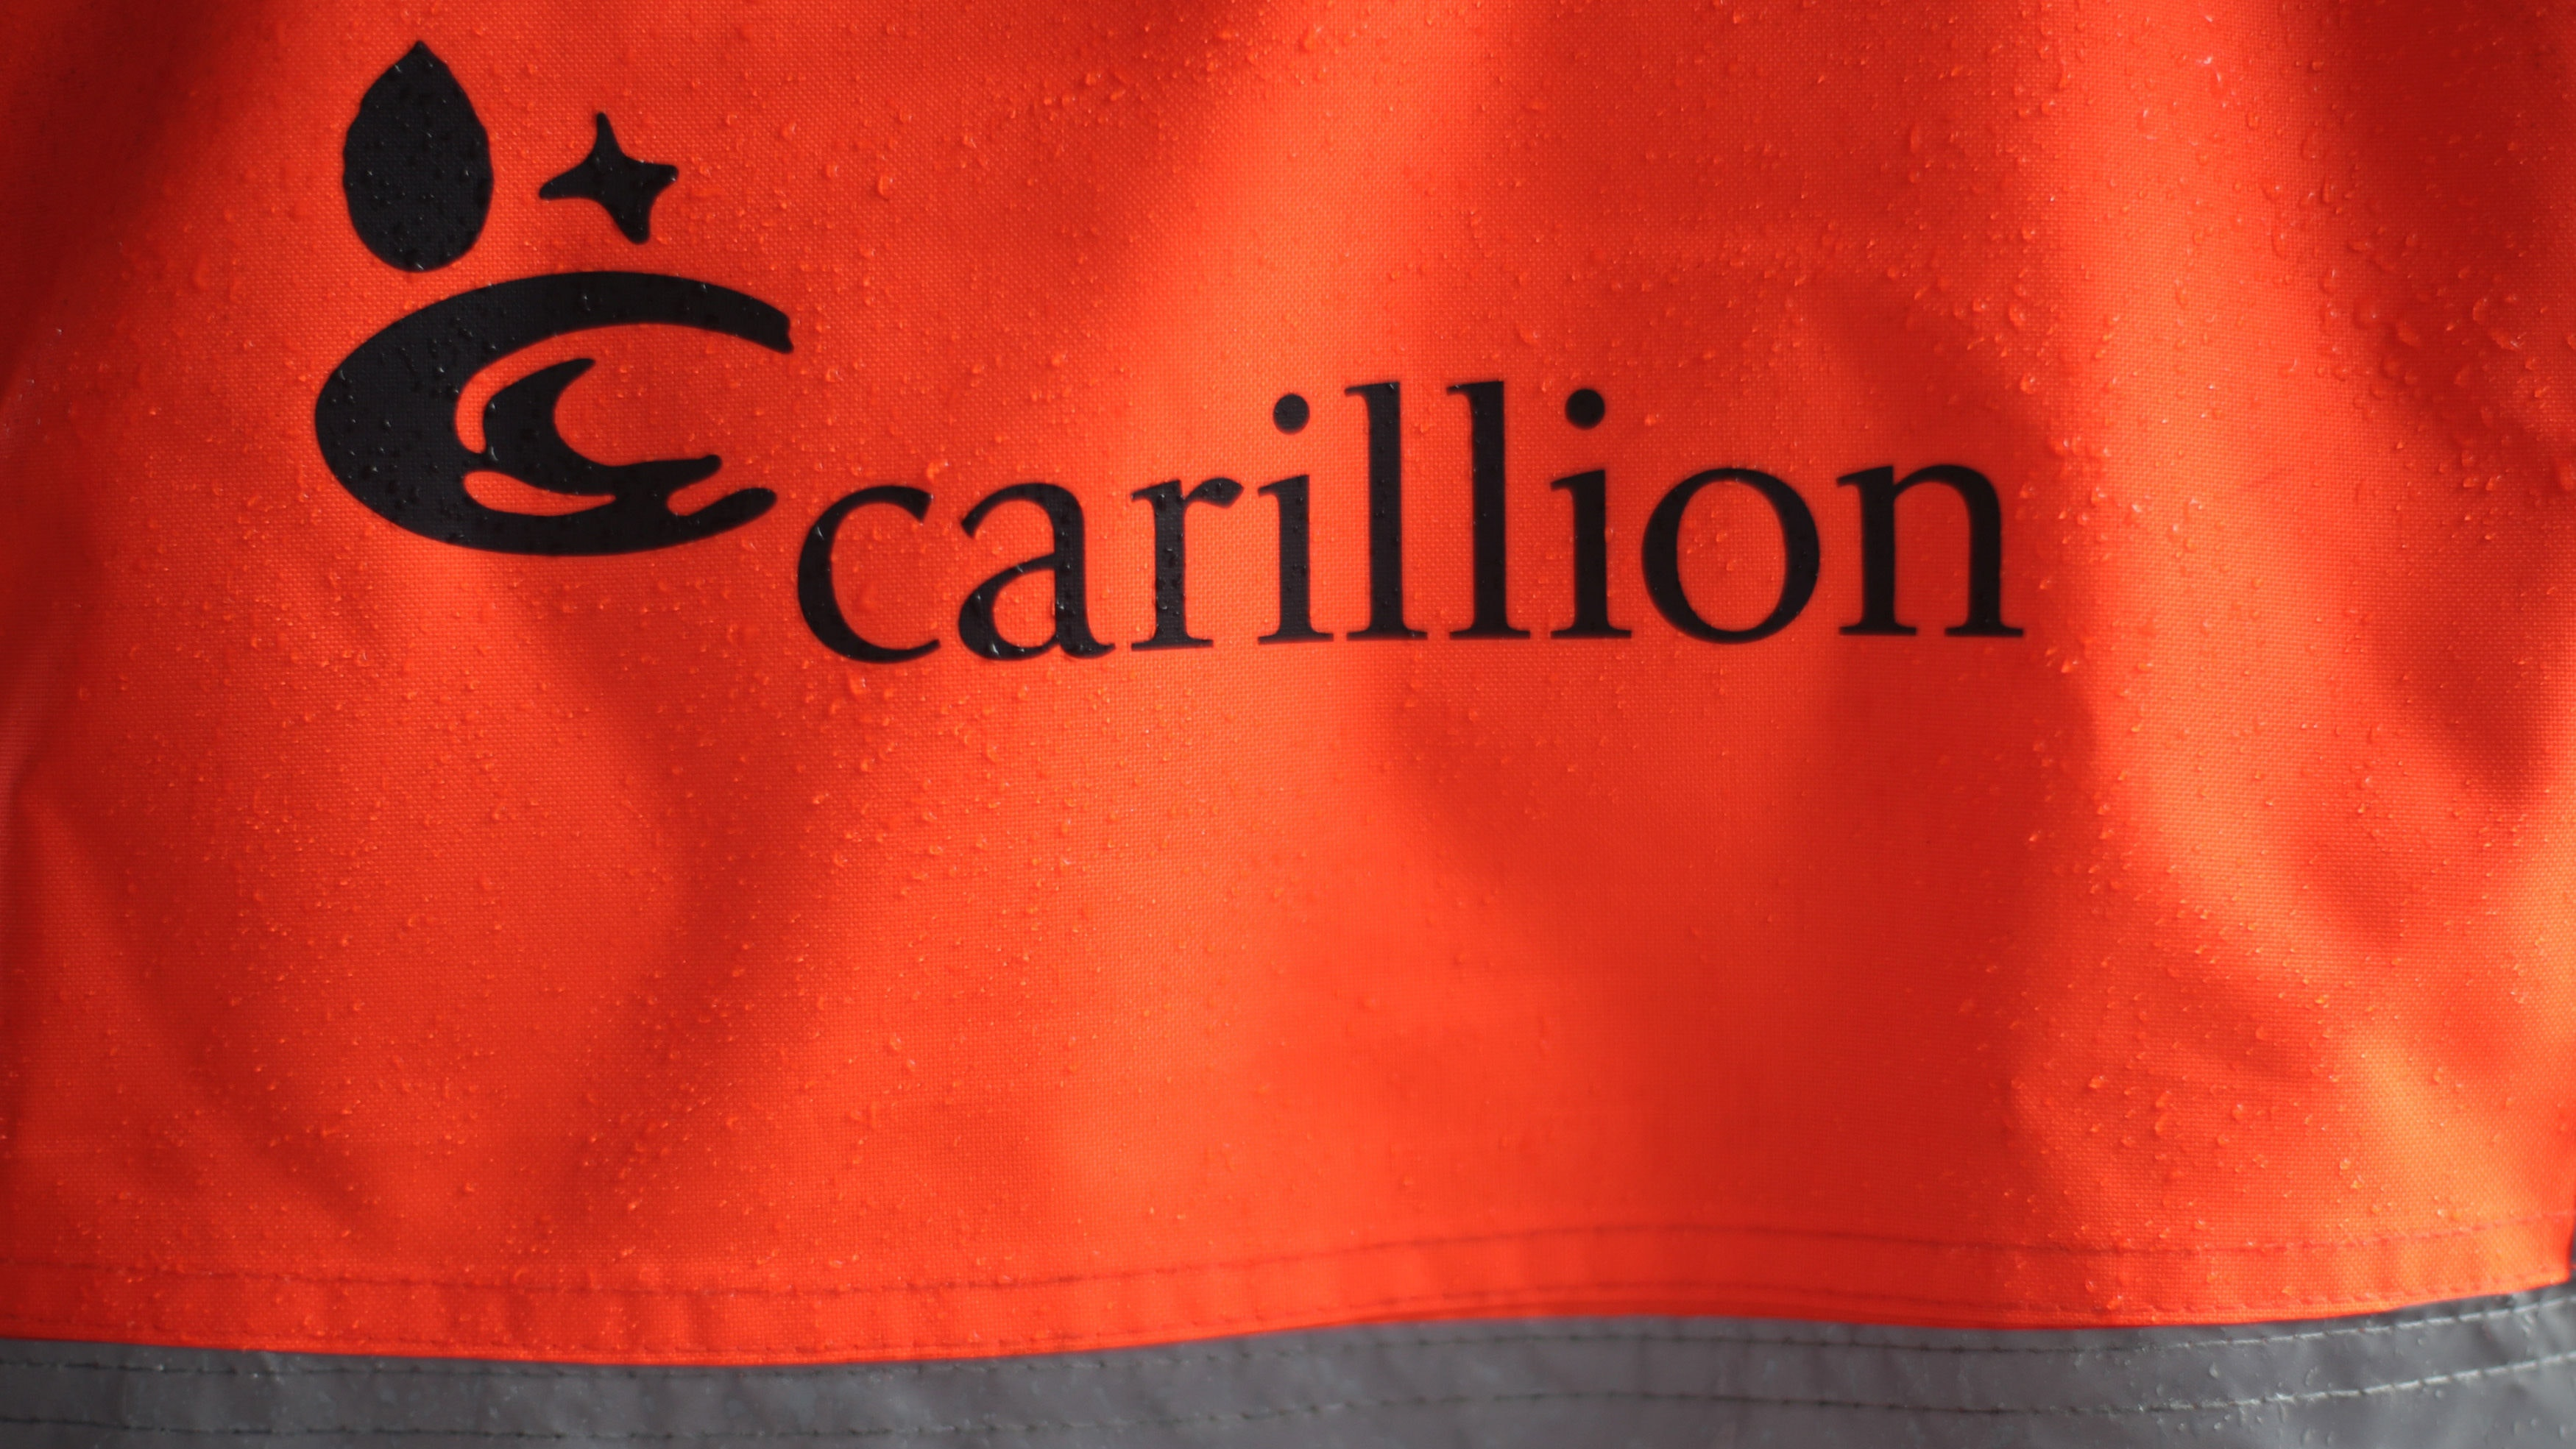 Carillion's auditor KPMG to be investigated